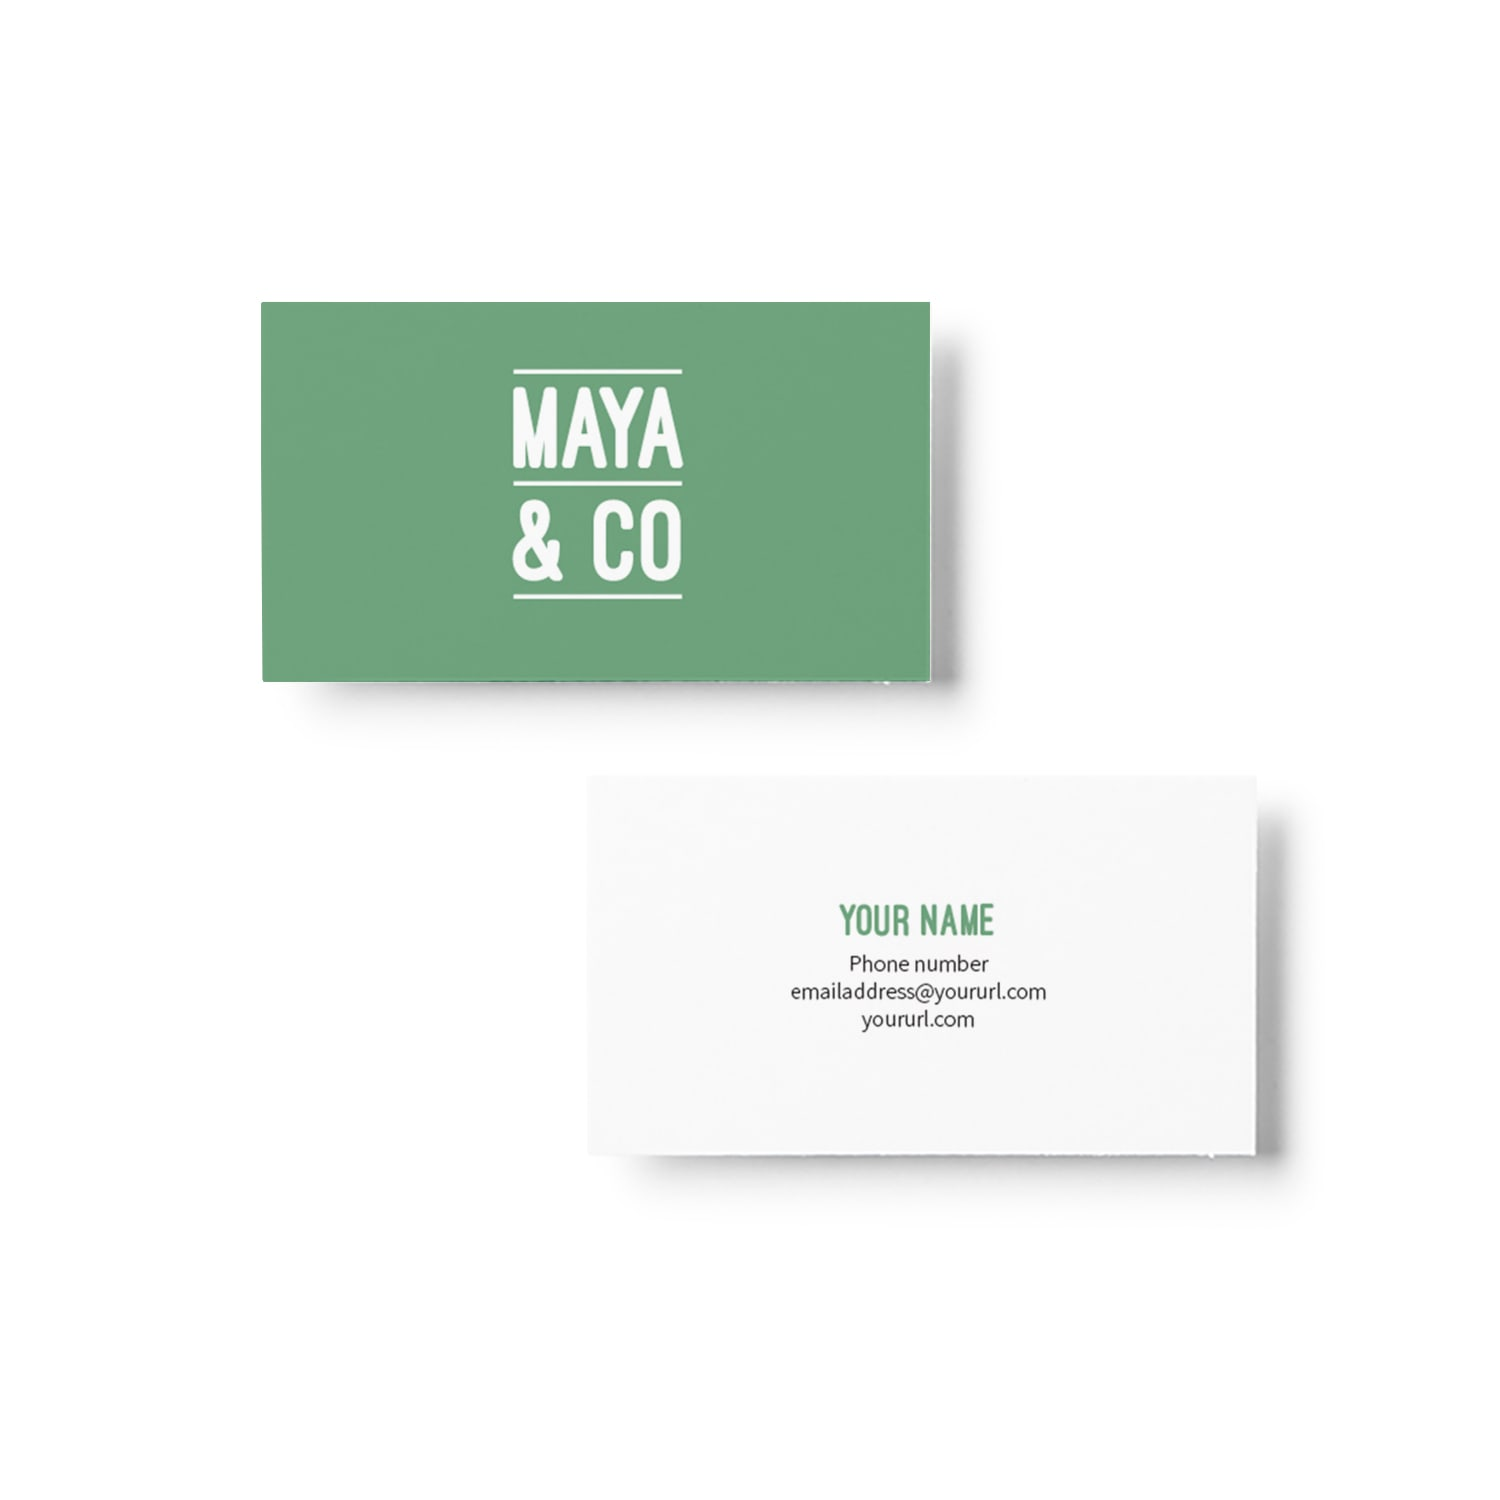 Maya & Co Business Card Design_Copyright Tiny Crowd